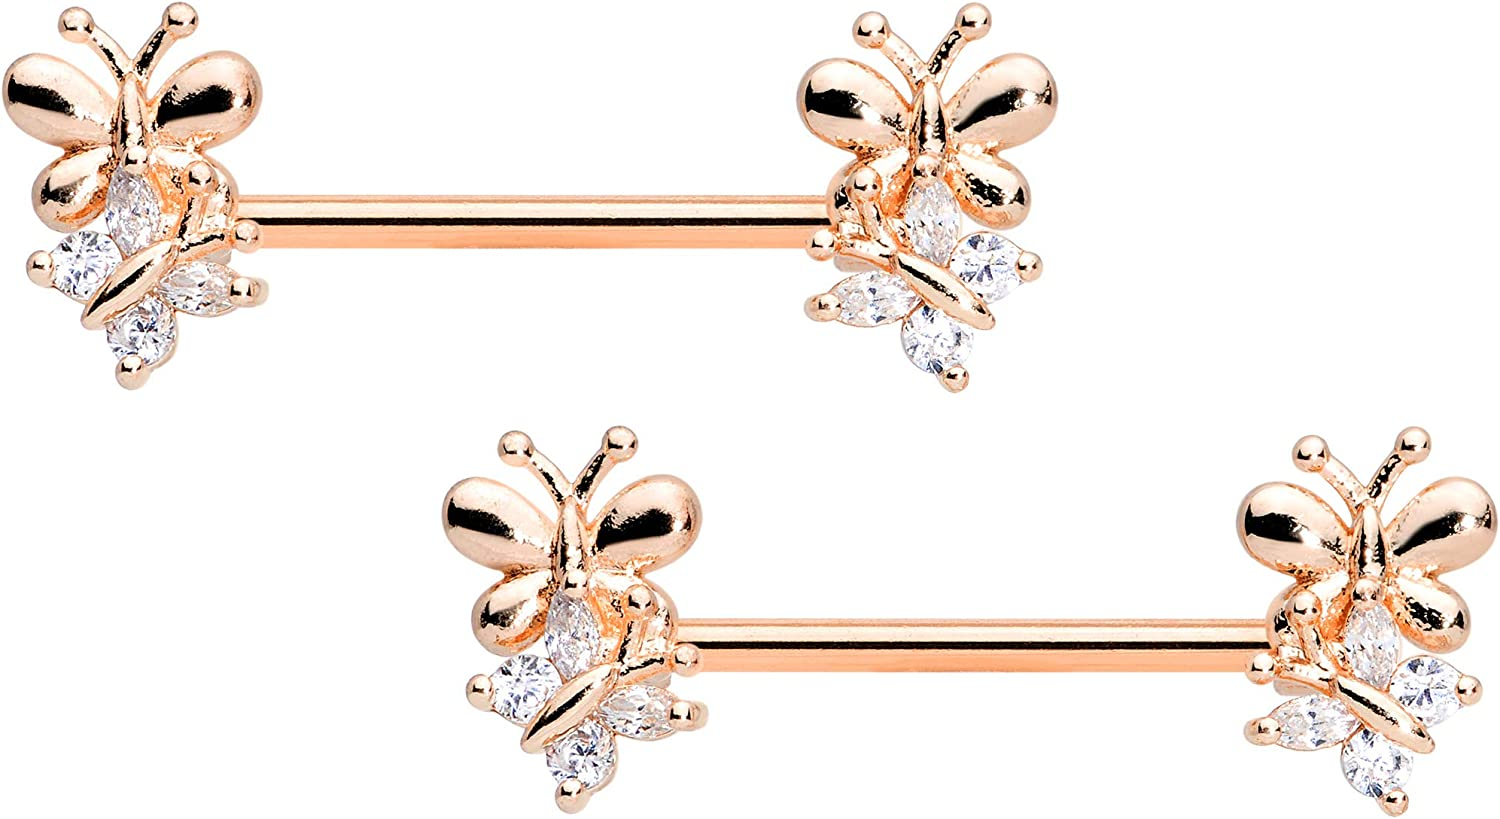 Body Candy 14G Women Nipplerings Piercing Plated Steel 2Pc Rosy Clear Accent Butterfly Nipple Ring Set 9/16